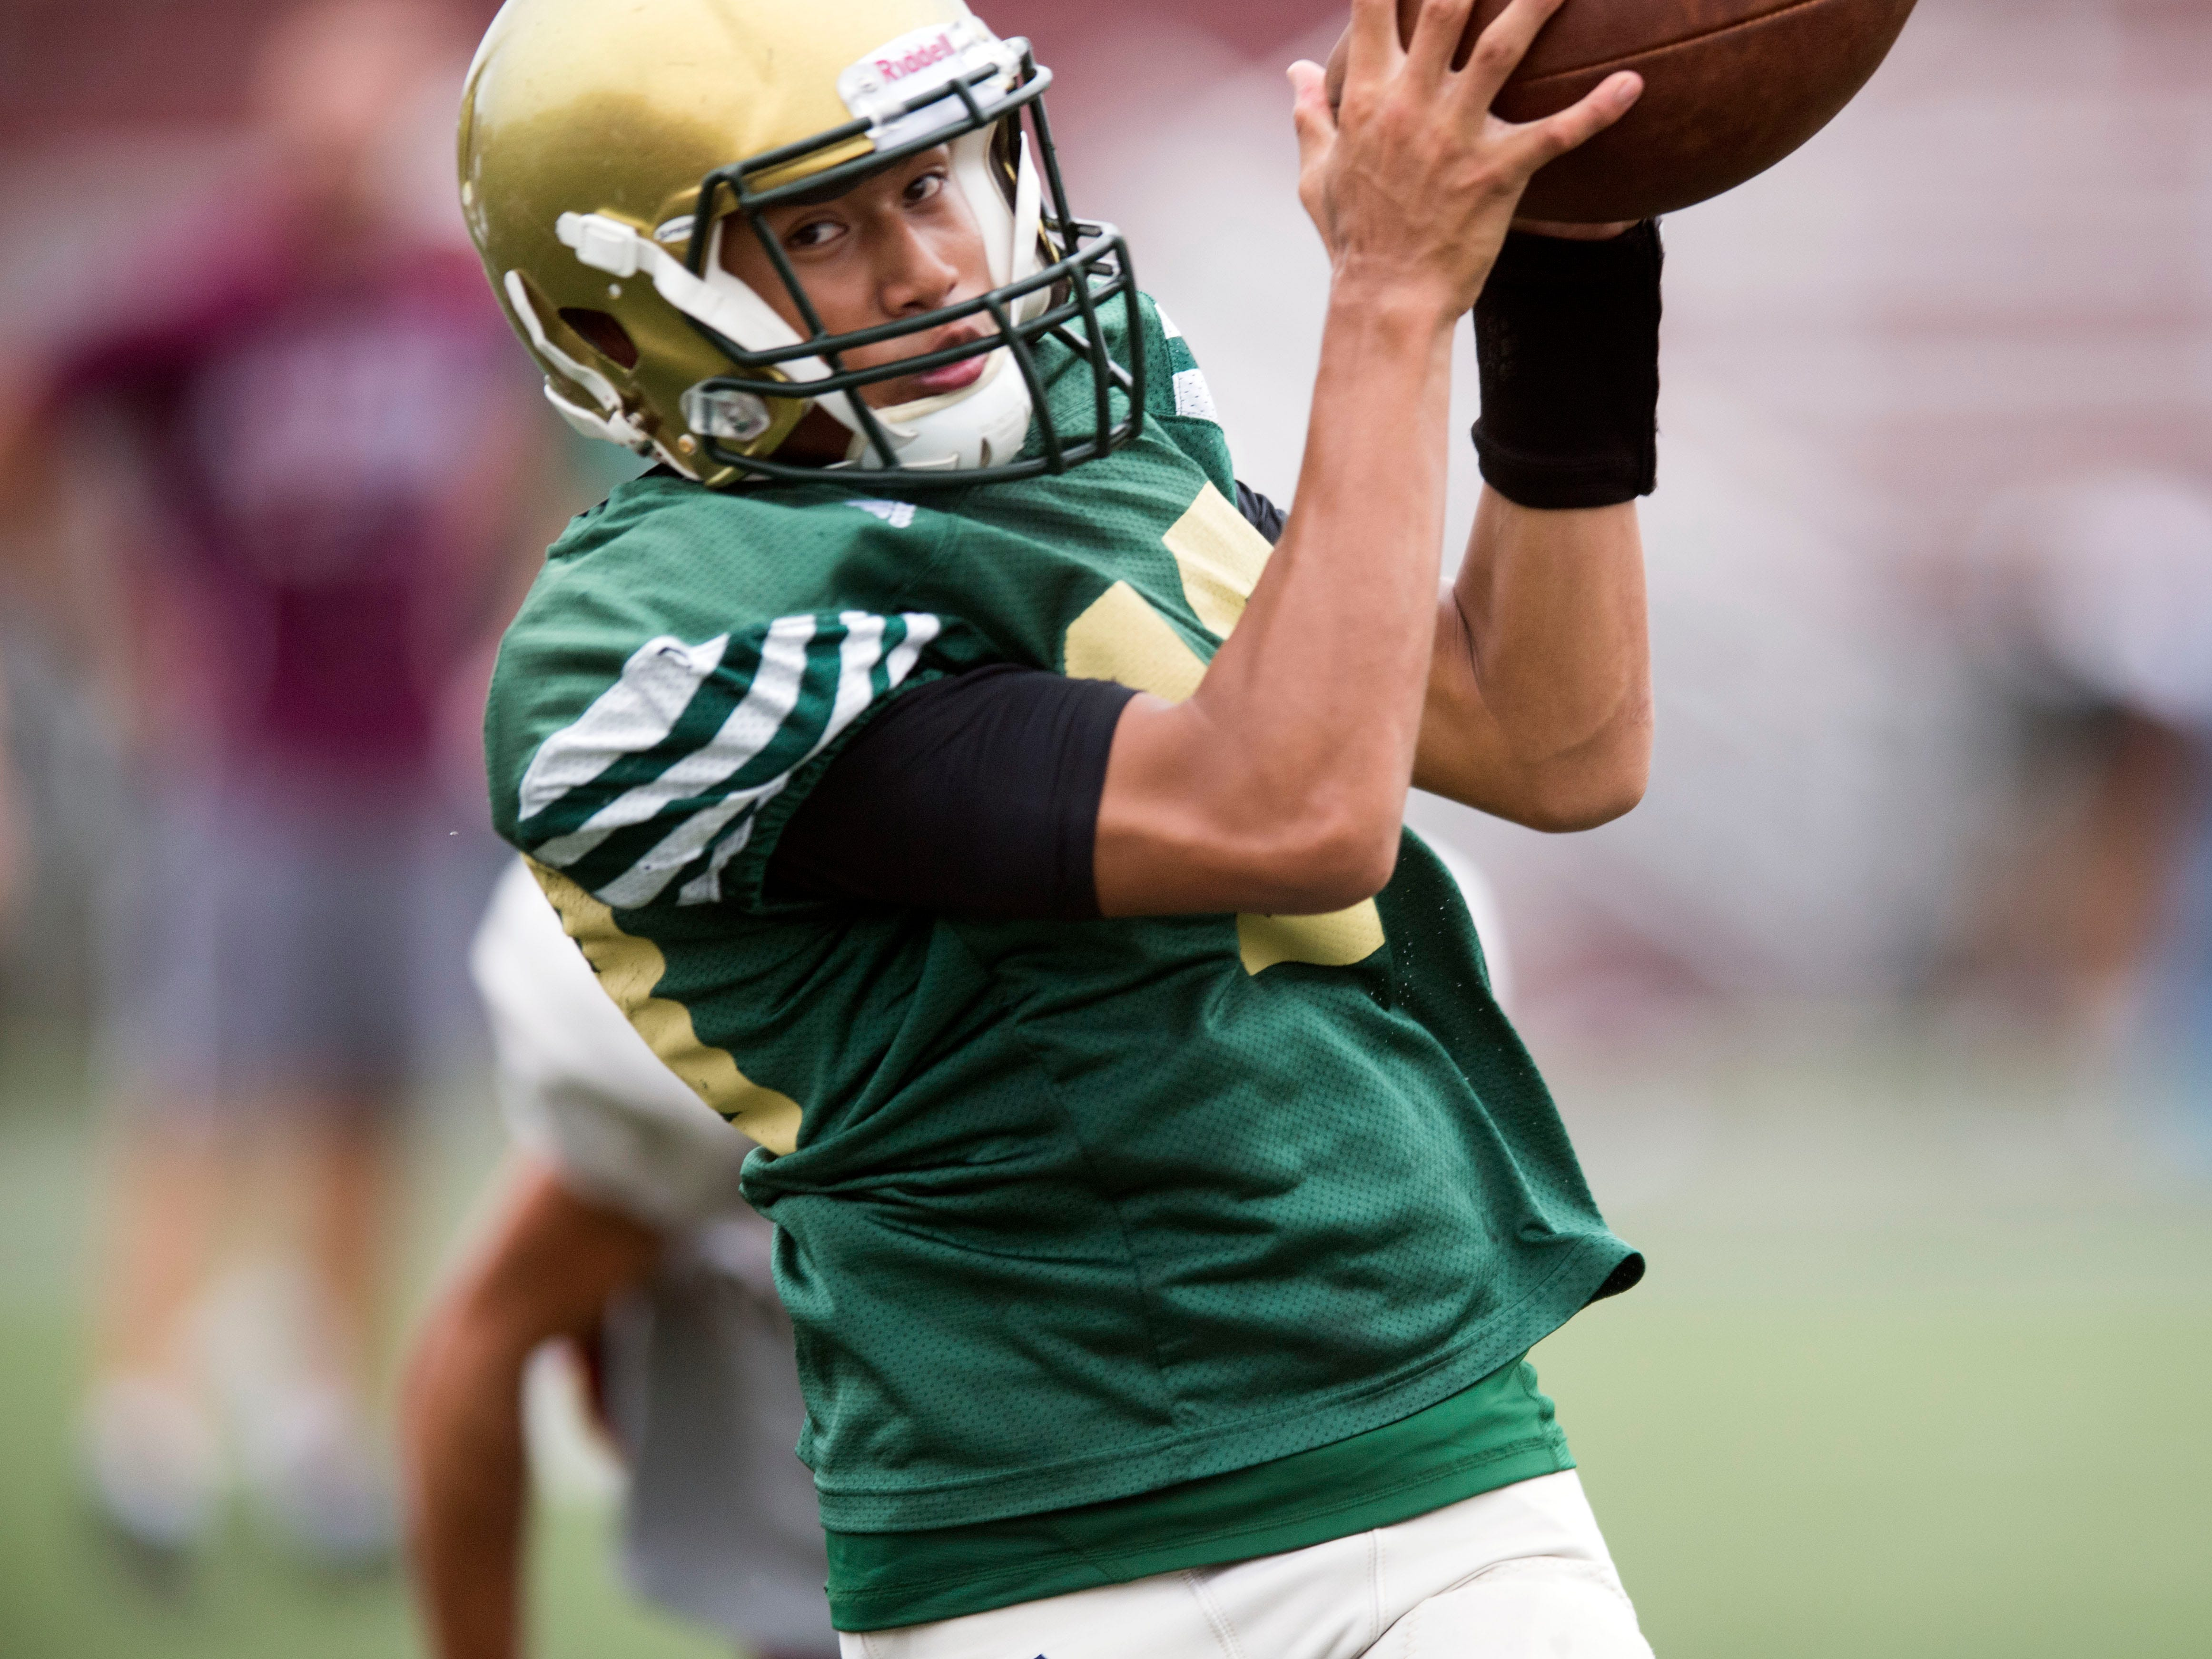 Knoxville Catholic's Ryan Beldyk (18) pulls down a pass during a football scrimmage against Alcoa on Tuesday, July 31, 2018.